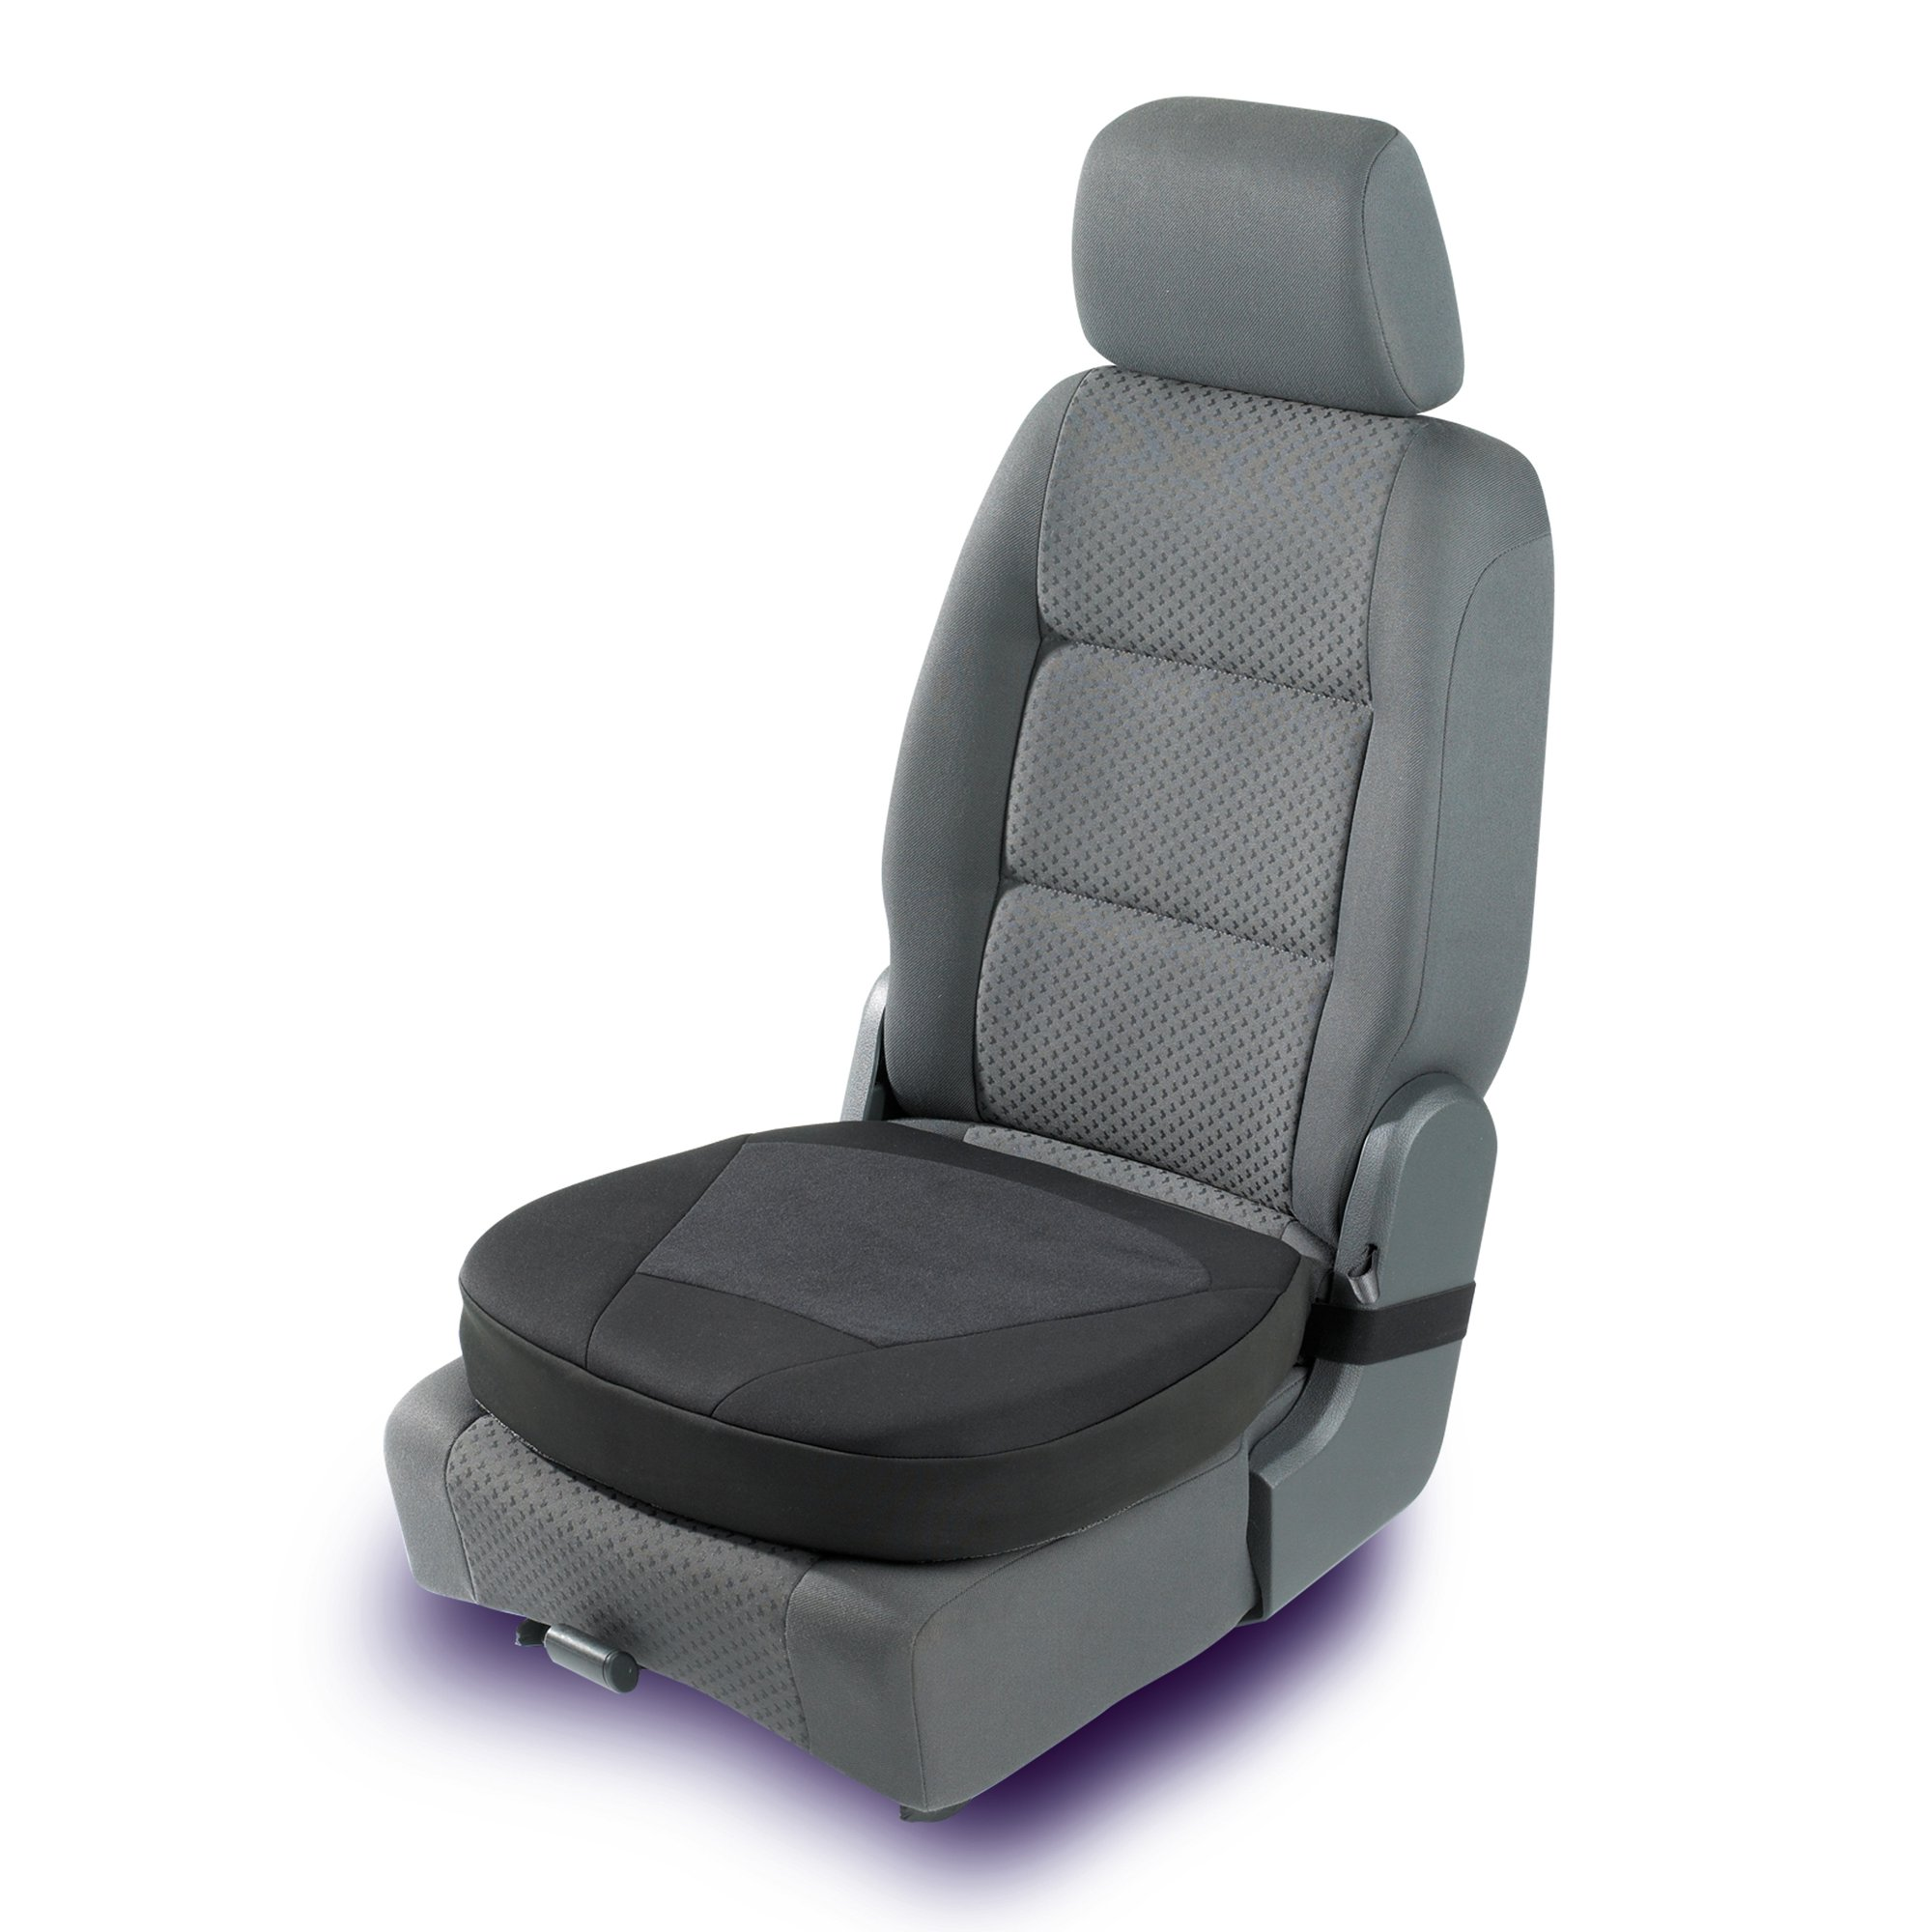 Alfa img - Showing > Adult Booster Seat for Driving